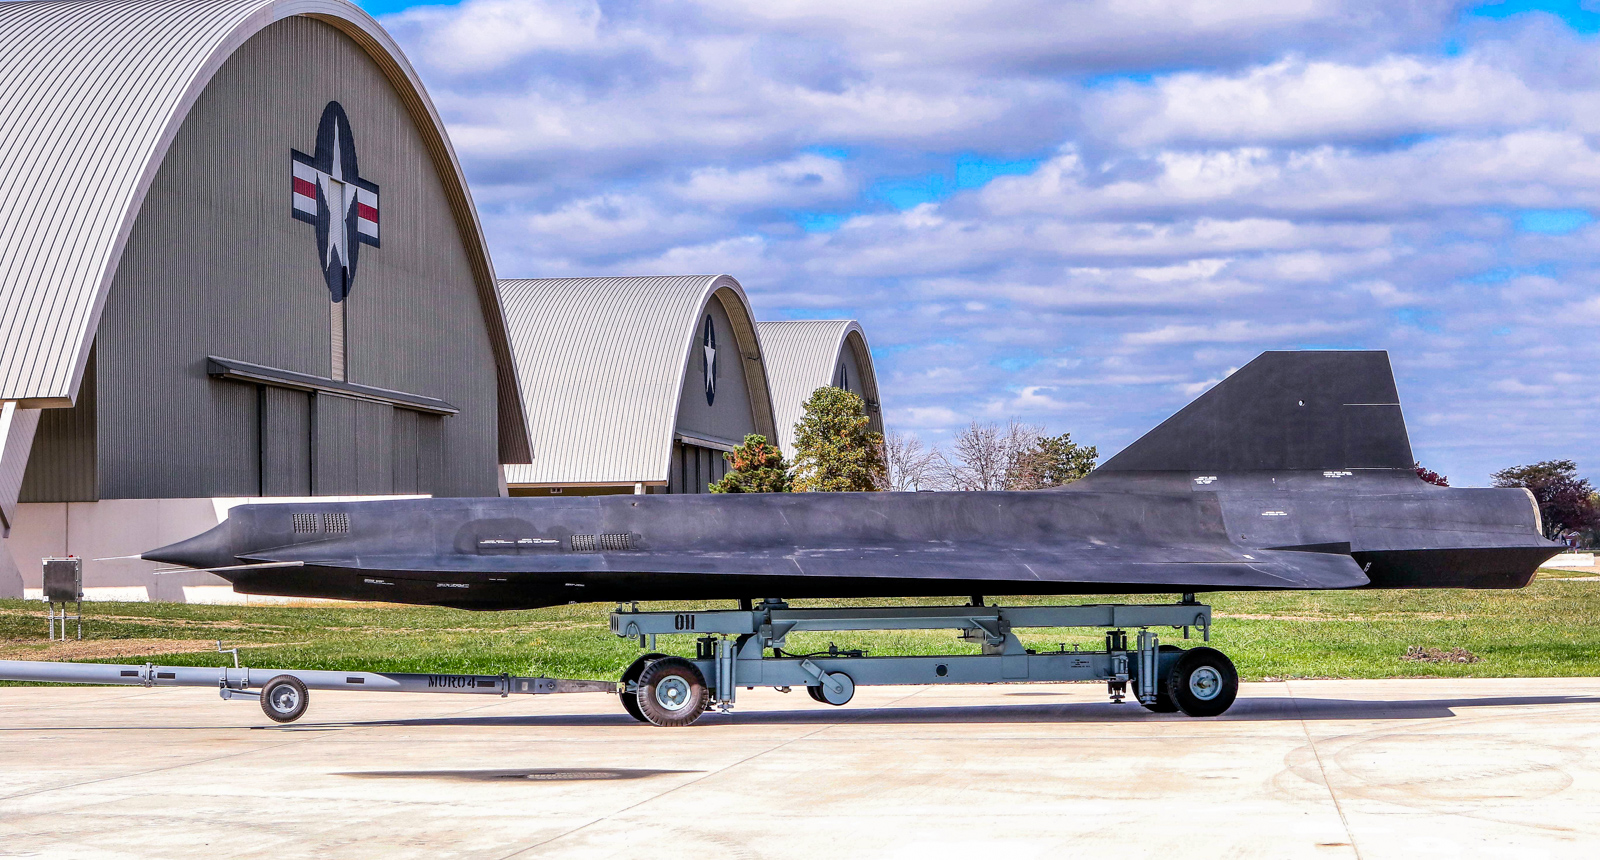 Lockheed D-21B drone being moved into the new fourth building at the National Museum of the U.S. Air Force on Oct. 13, 2015. The D-21 was designed to mount on top of the M-21 mother ship, a close relative of the SR-71 Blackbird, and fly into hostile airspace to perform a similar mission to the SR-71, but with less inherent risks to a human pilot. (U.S. Air Force photo by Don Popp)